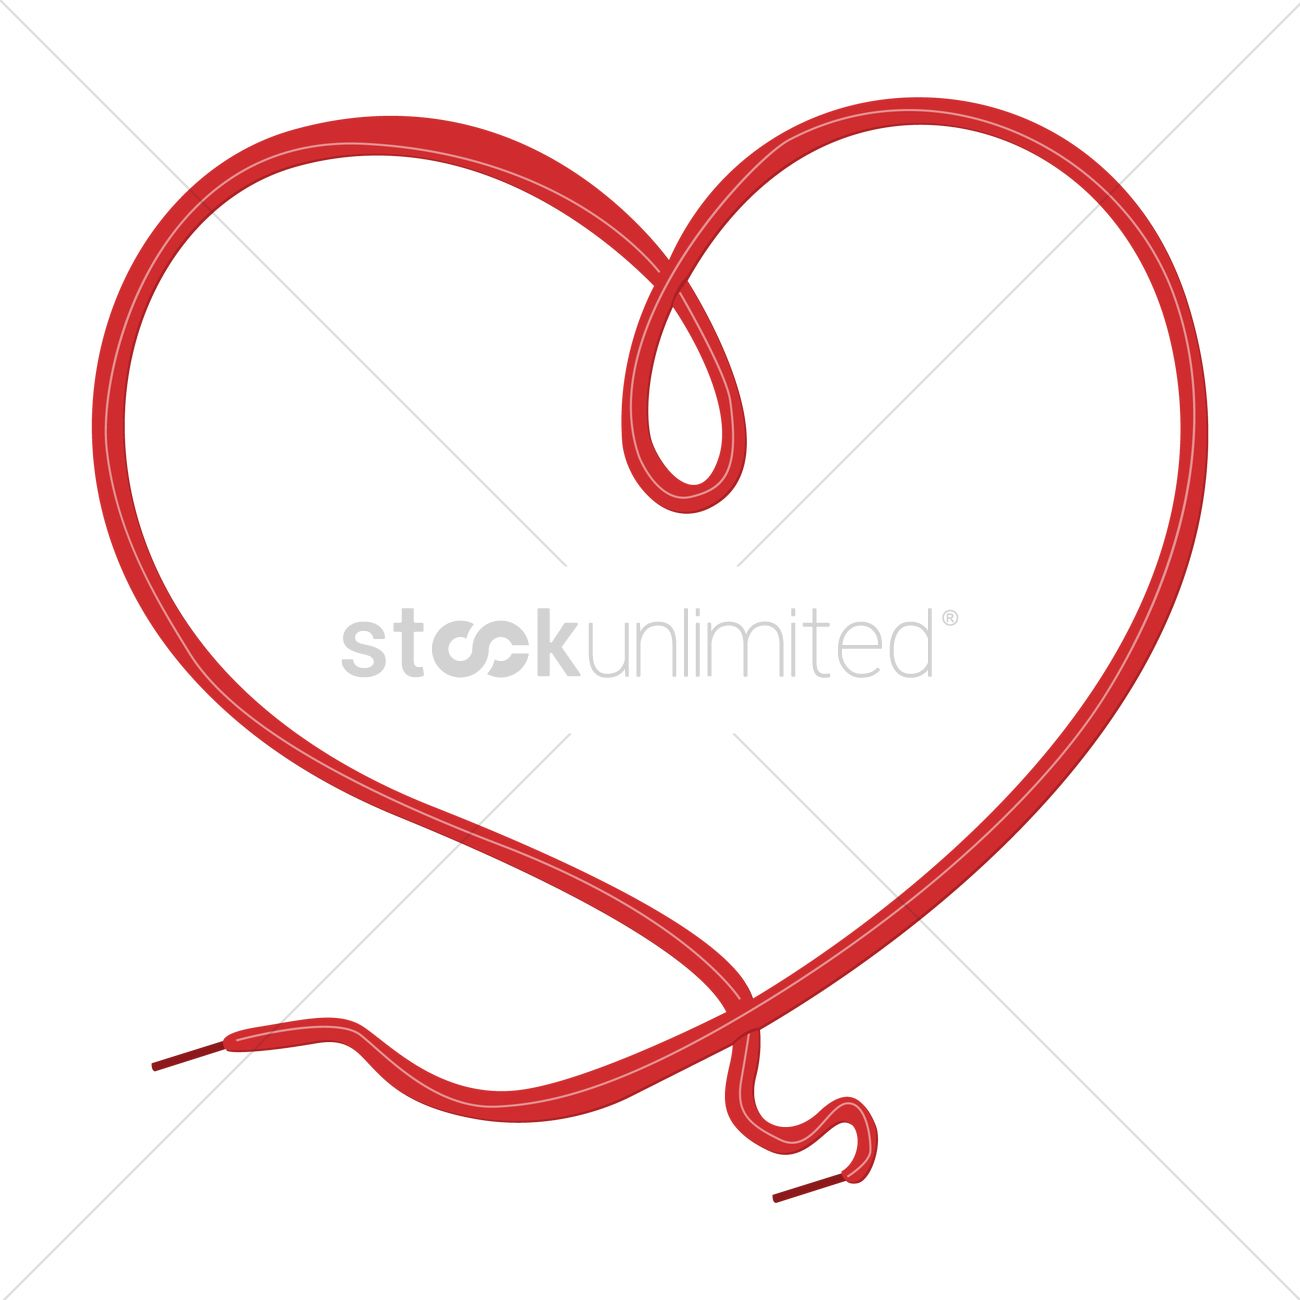 1300x1300 Heart Design With Shoe Lace Vector Image